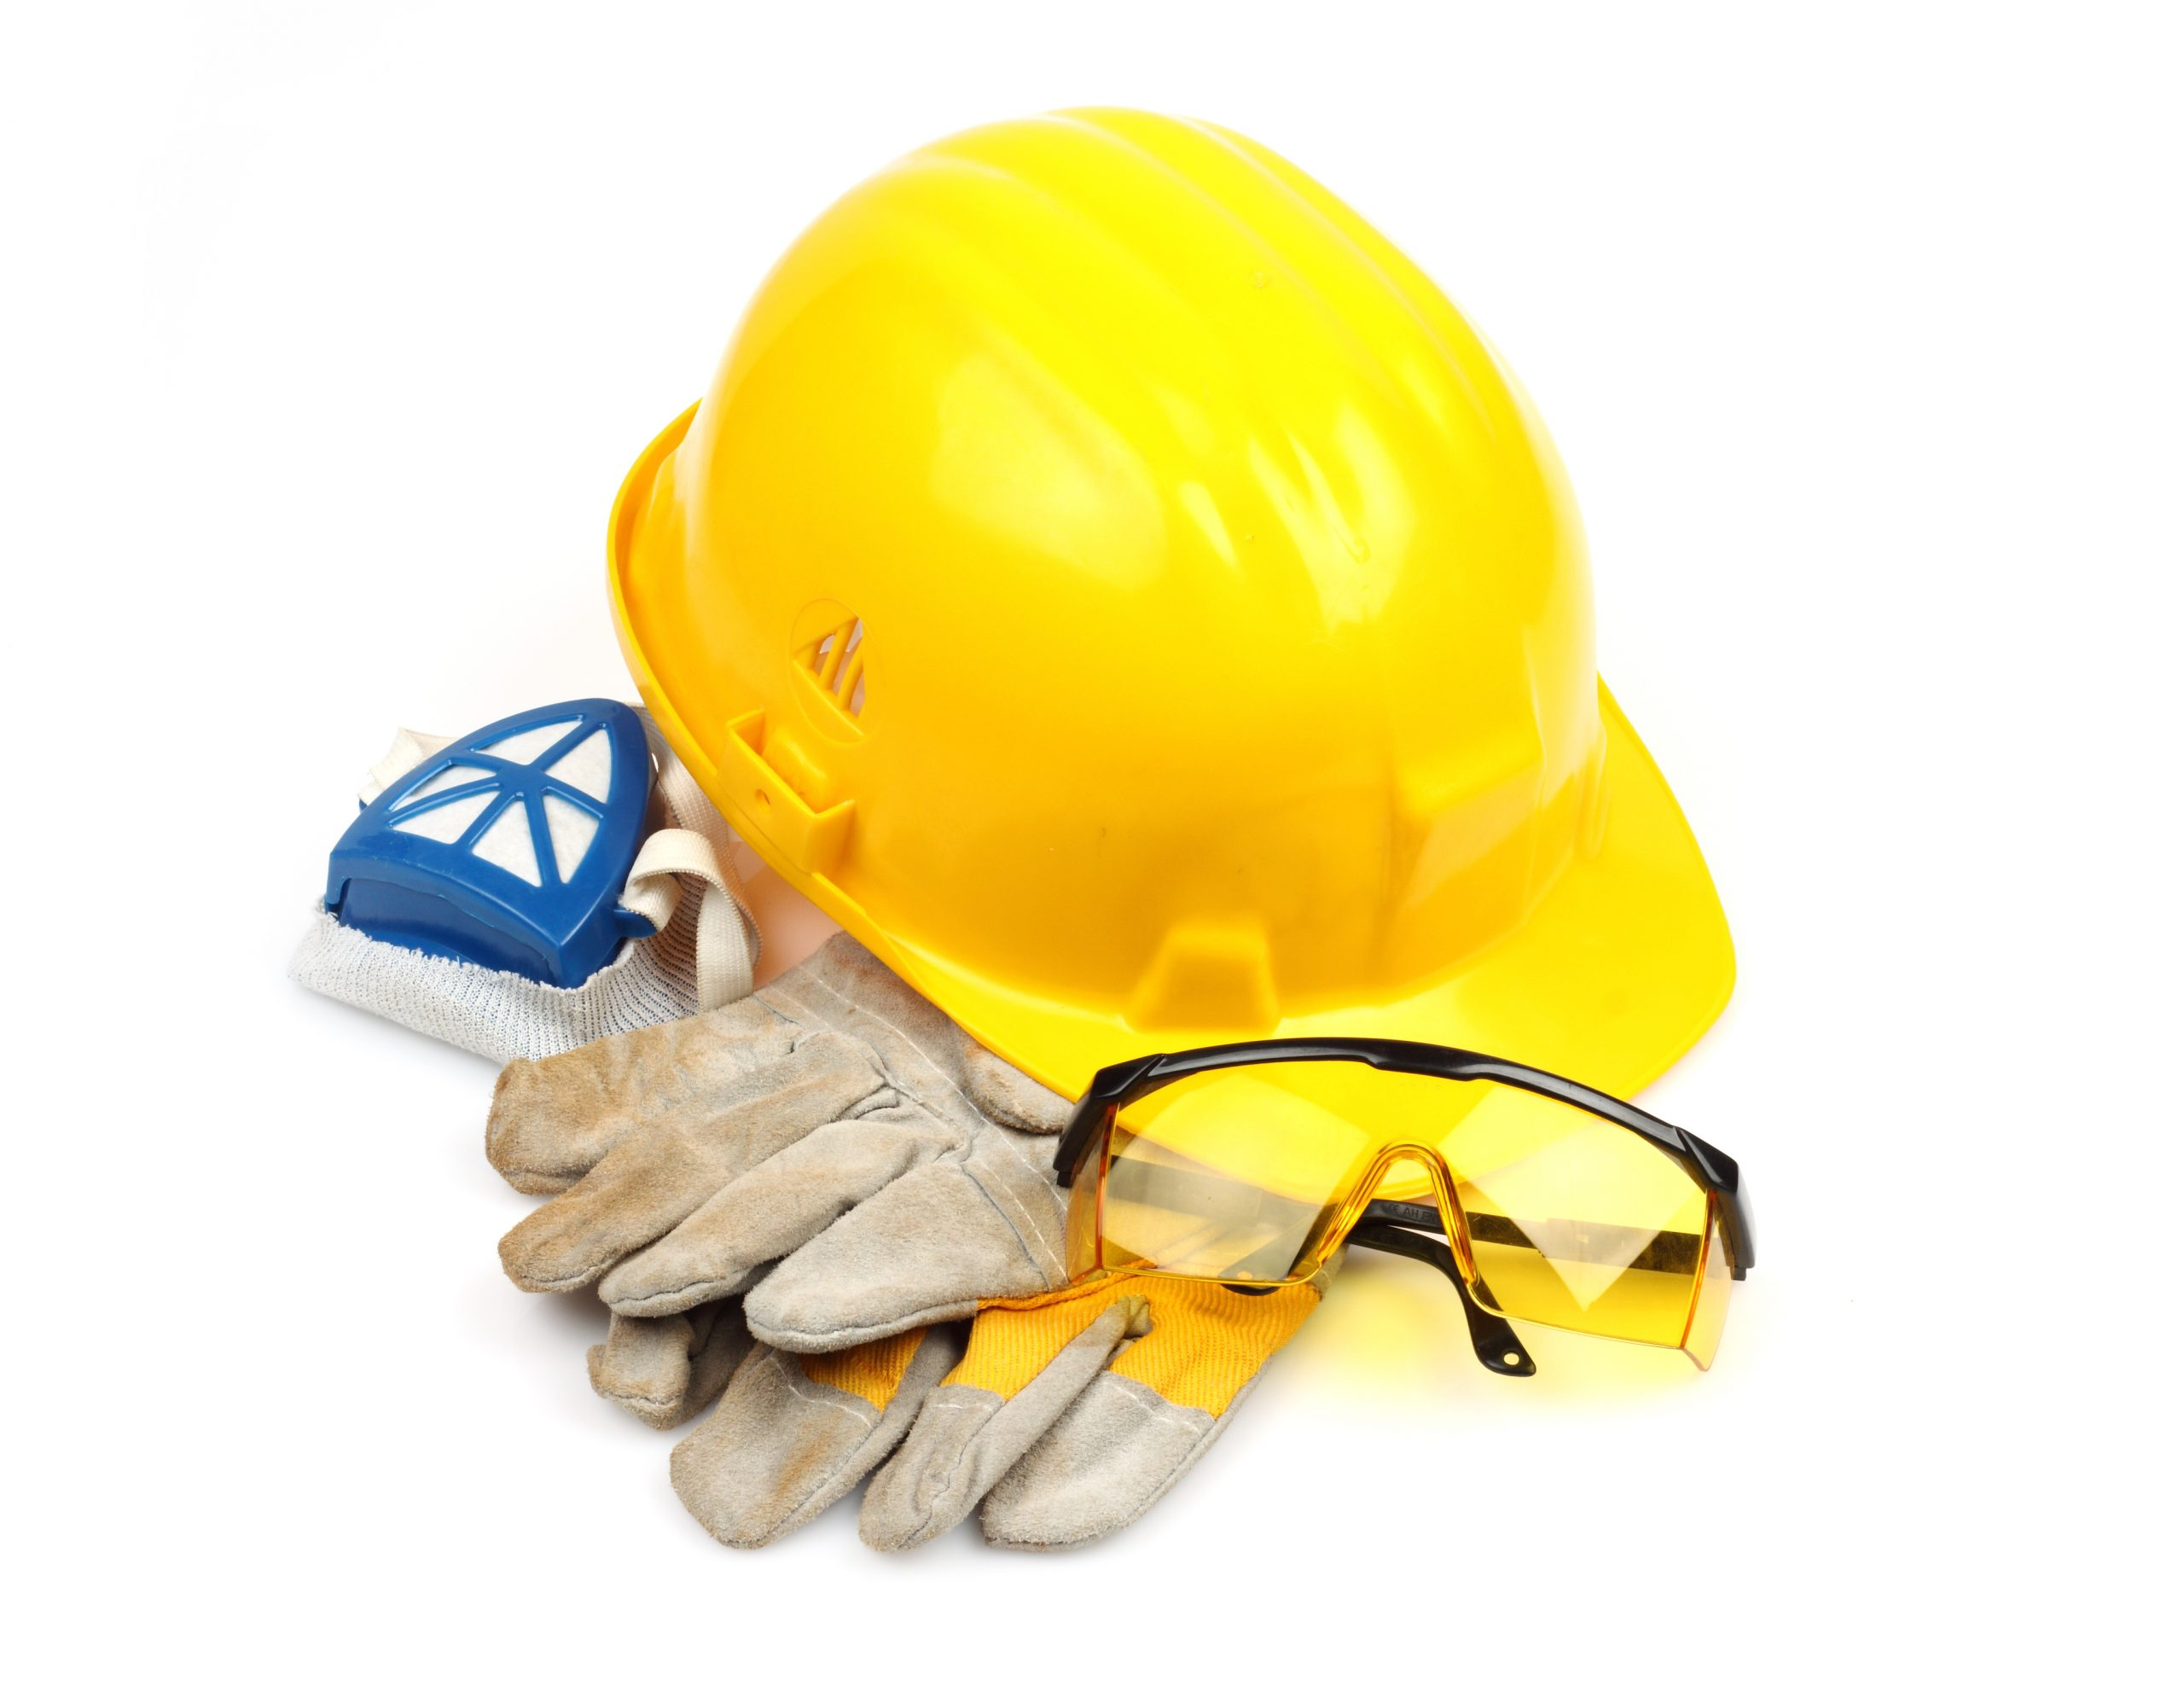 Welfare, Health and Safety: It's Not Just For Employees